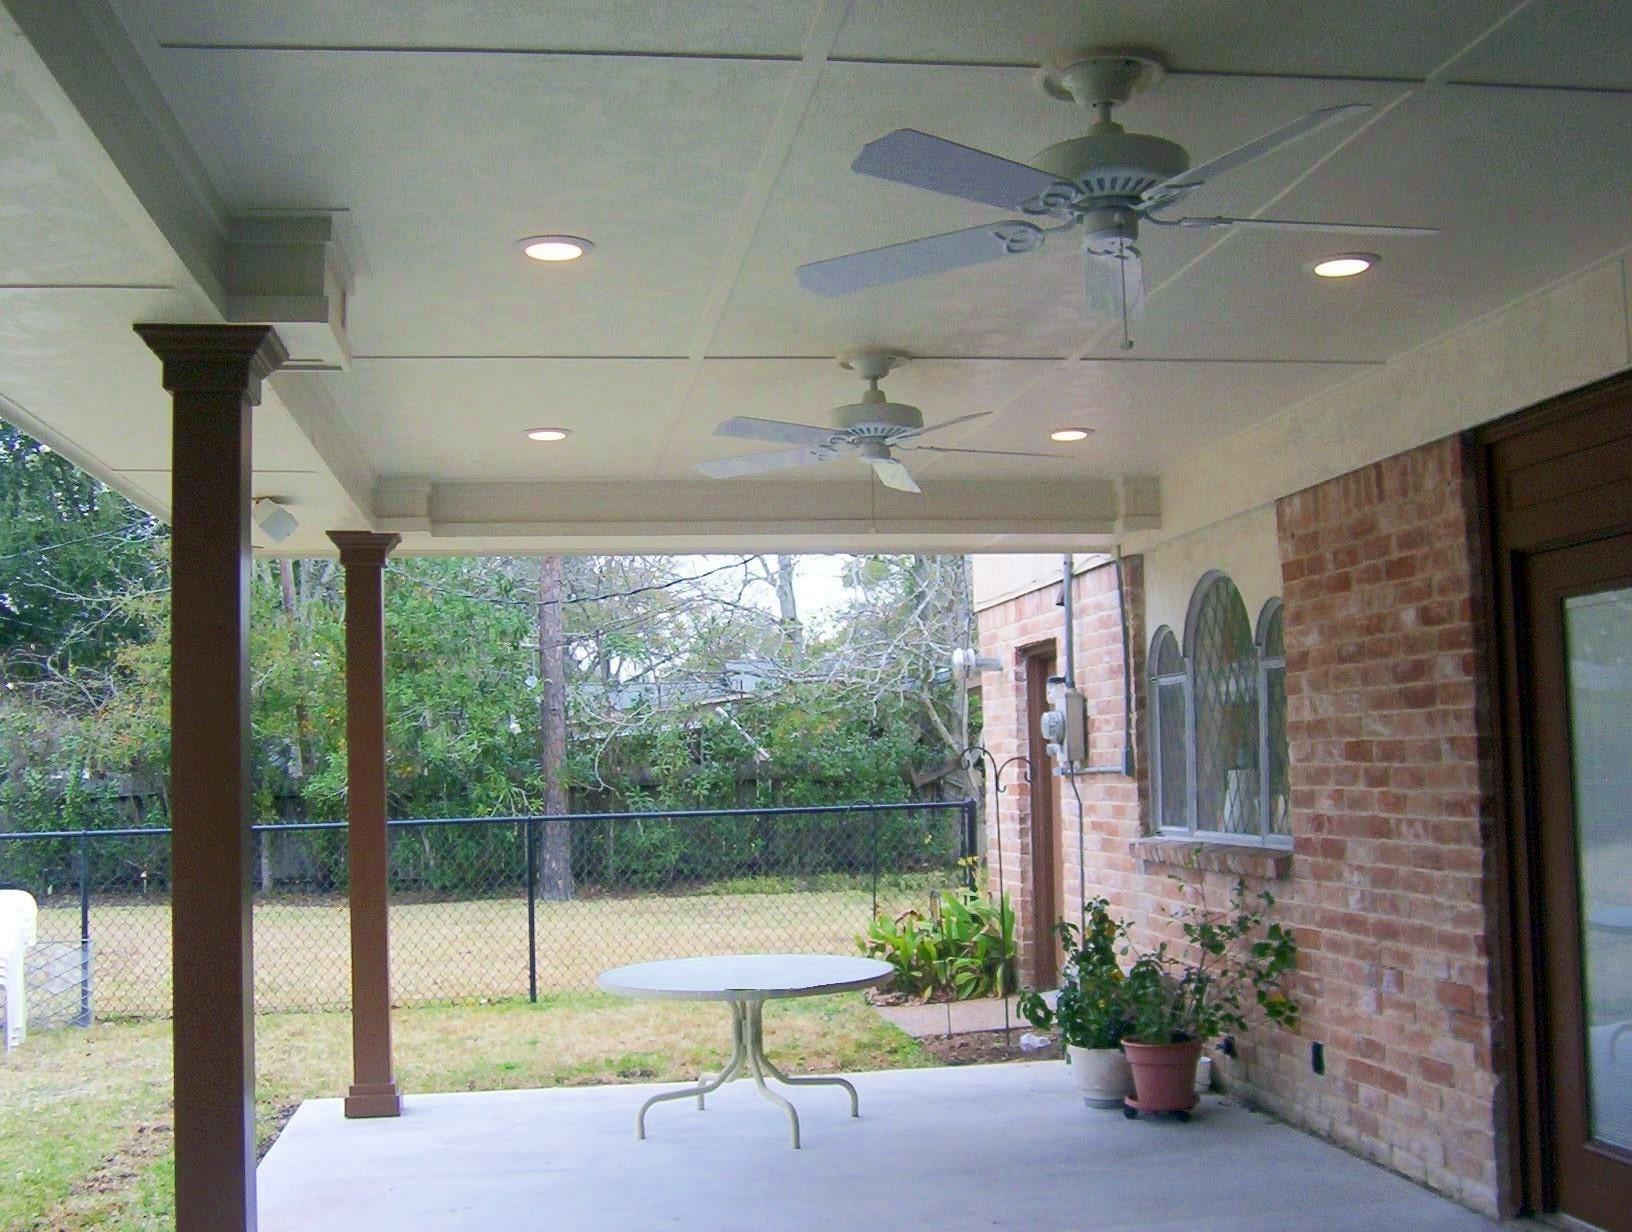 Most Current Outdoor Ceiling Fans For Patios Pertaining To Patio Outdoor Ceiling Fan With Light — Sherizampelli Landscape (Gallery 2 of 20)